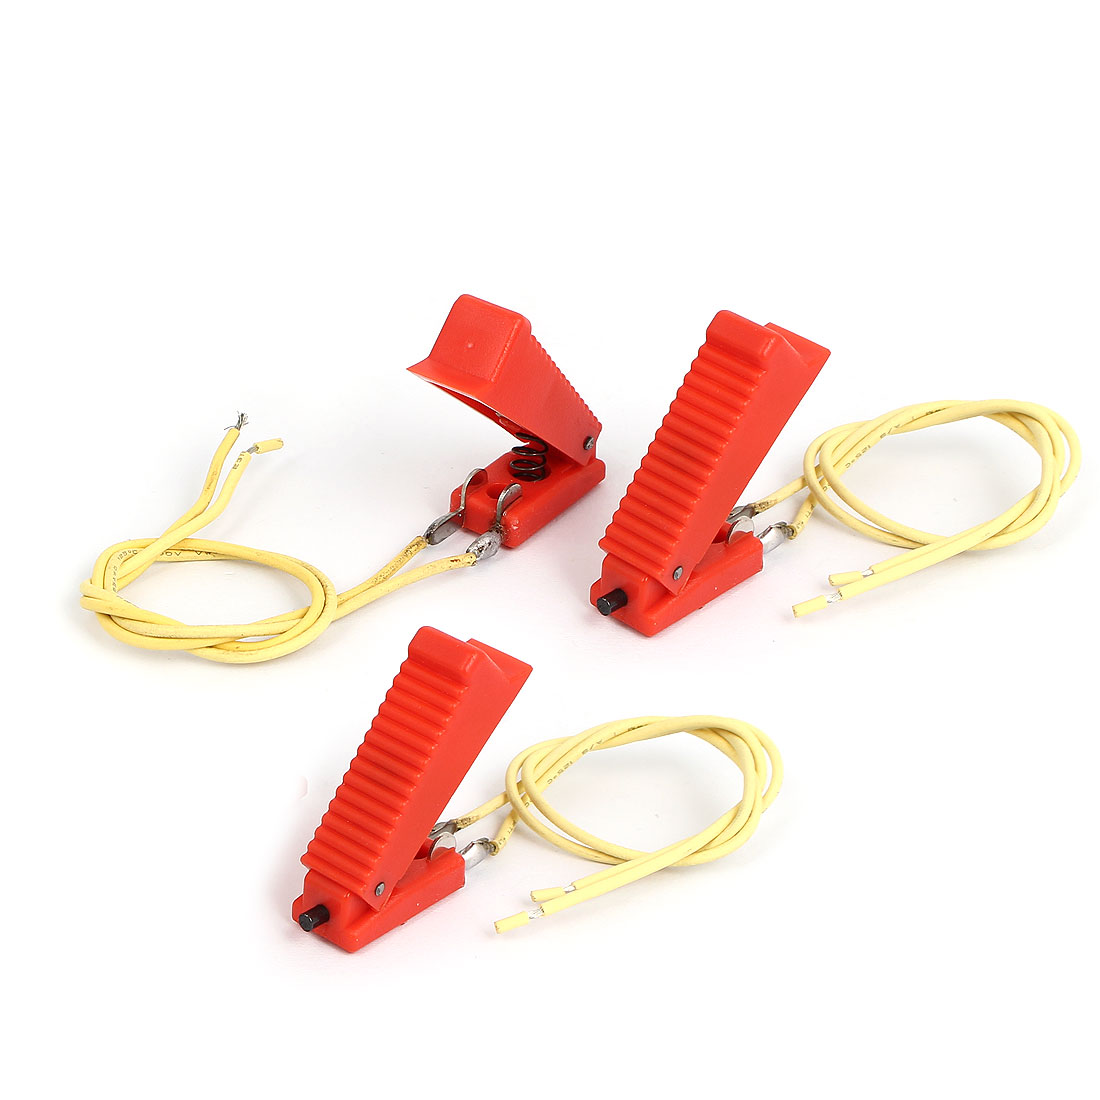 Plastic Red Shell 2 Terminals CO2 Welding Gun Cutter Trigger Switch 3 Pcs